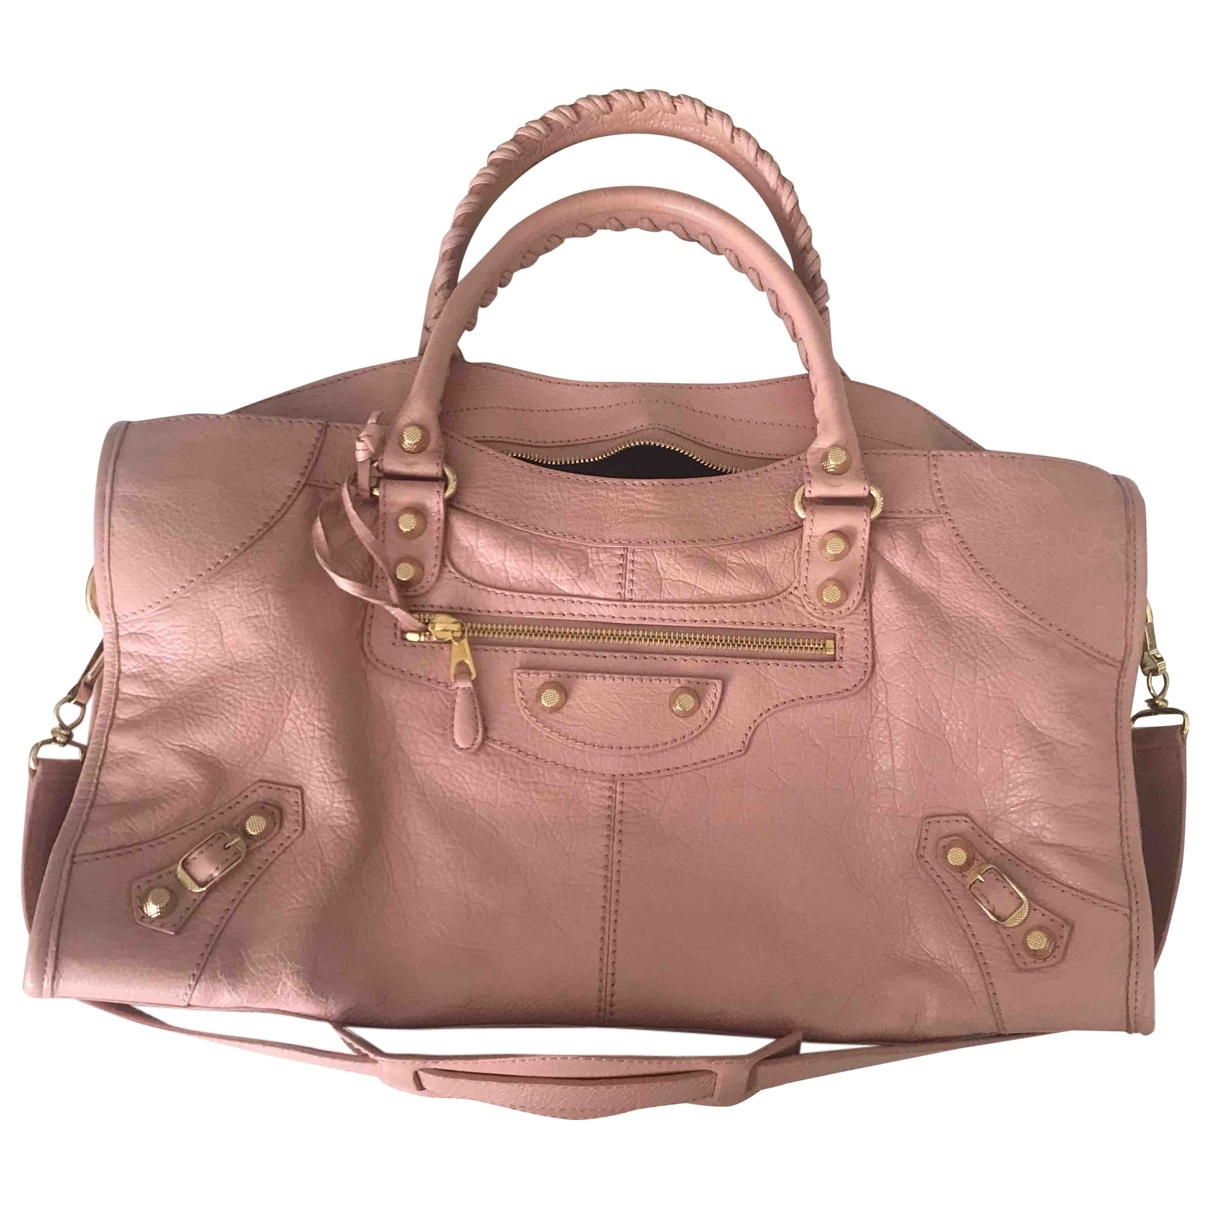 Balenciaga Part Time Pink Leather handbag for Women \N